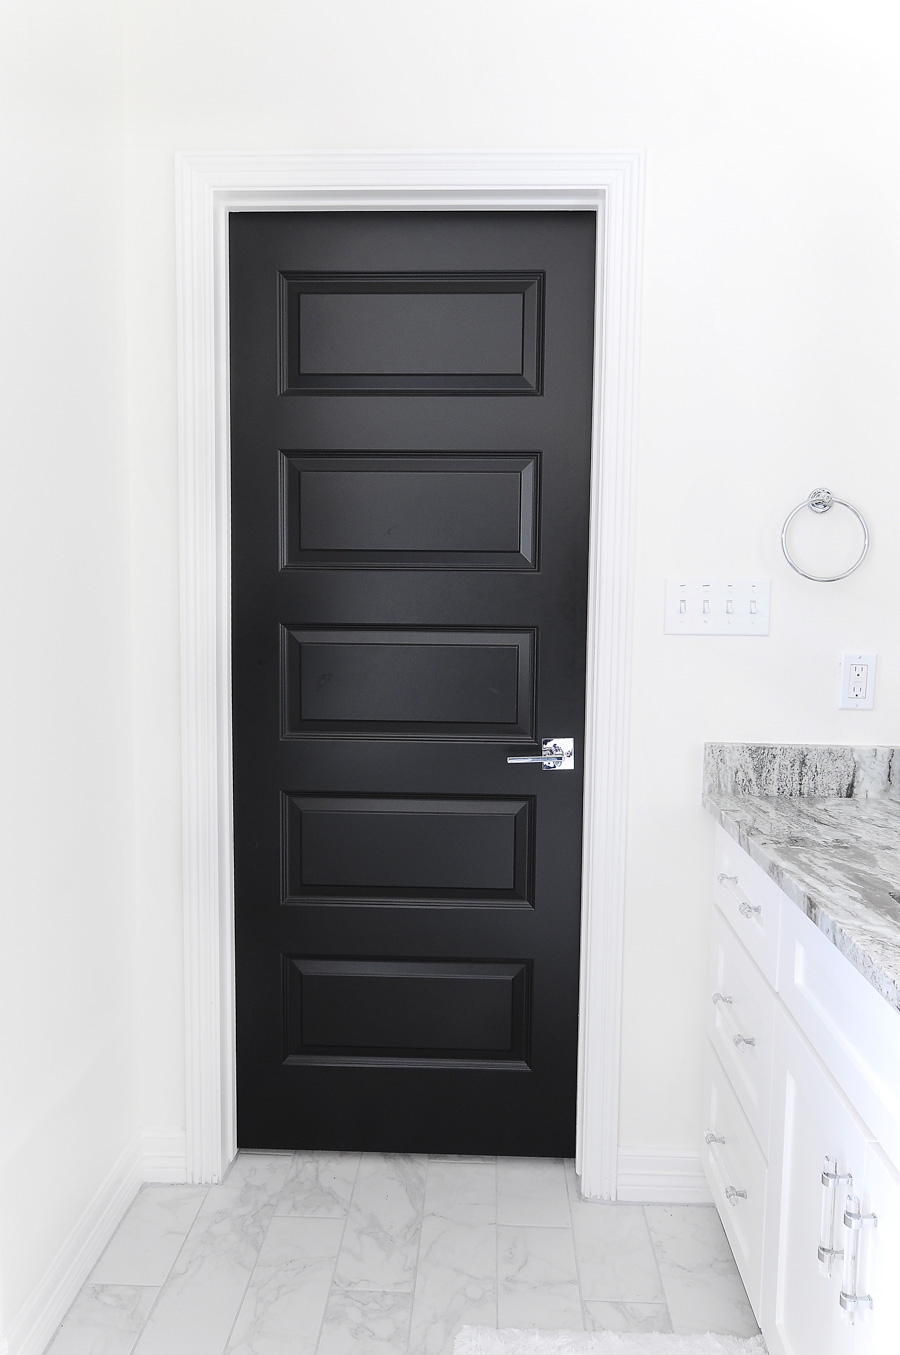 Black interior doors make a bold and dramatic statement in a home against white walls and marble floors.